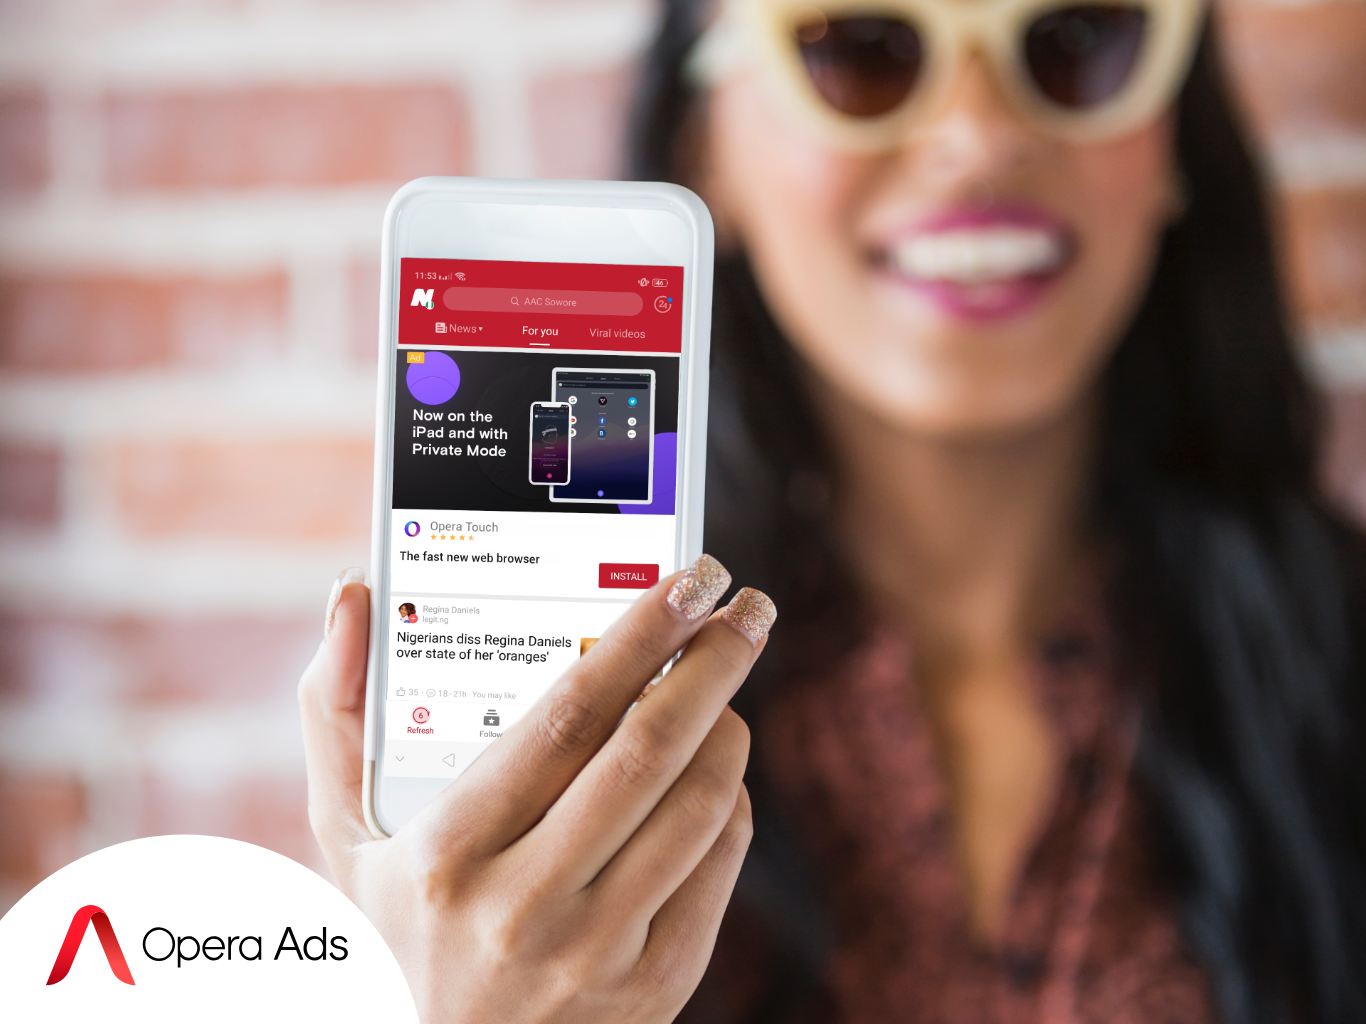 Opera launches Opera Ads, a powerful, content-based native advertising platform for its more than 30 million users in Nigeria